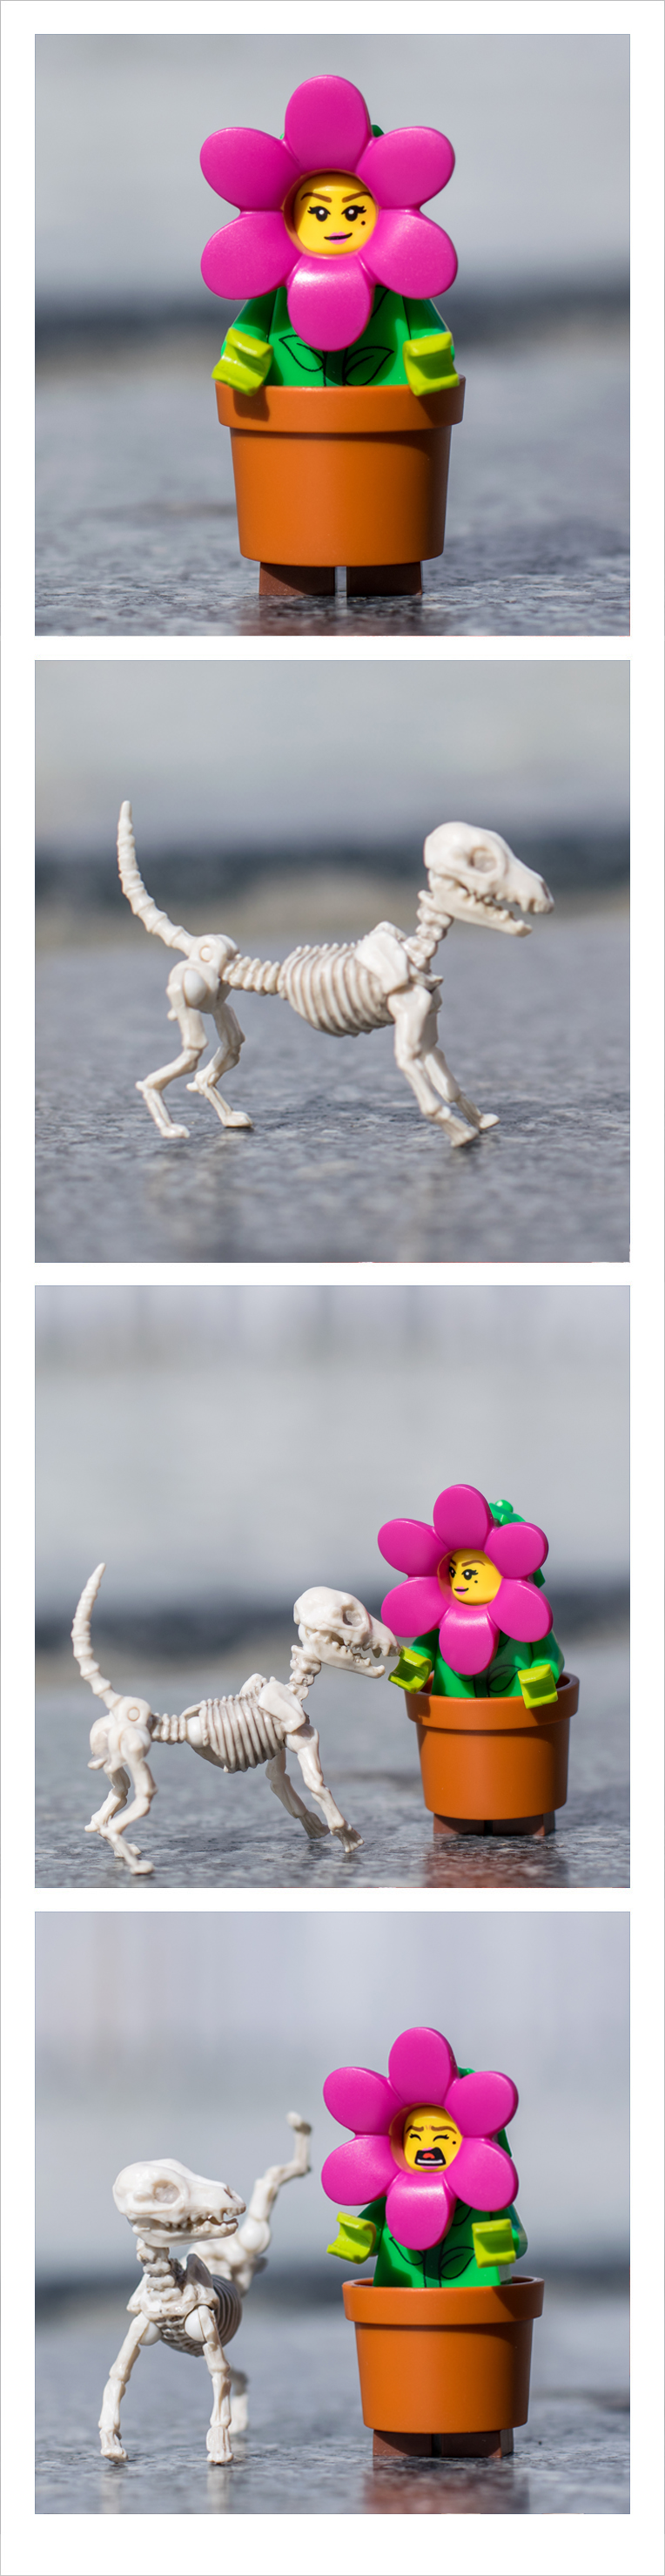 Photobooth Dog Flower - Pose Skeleton - Toy photography - Miniature - Eat my Bones